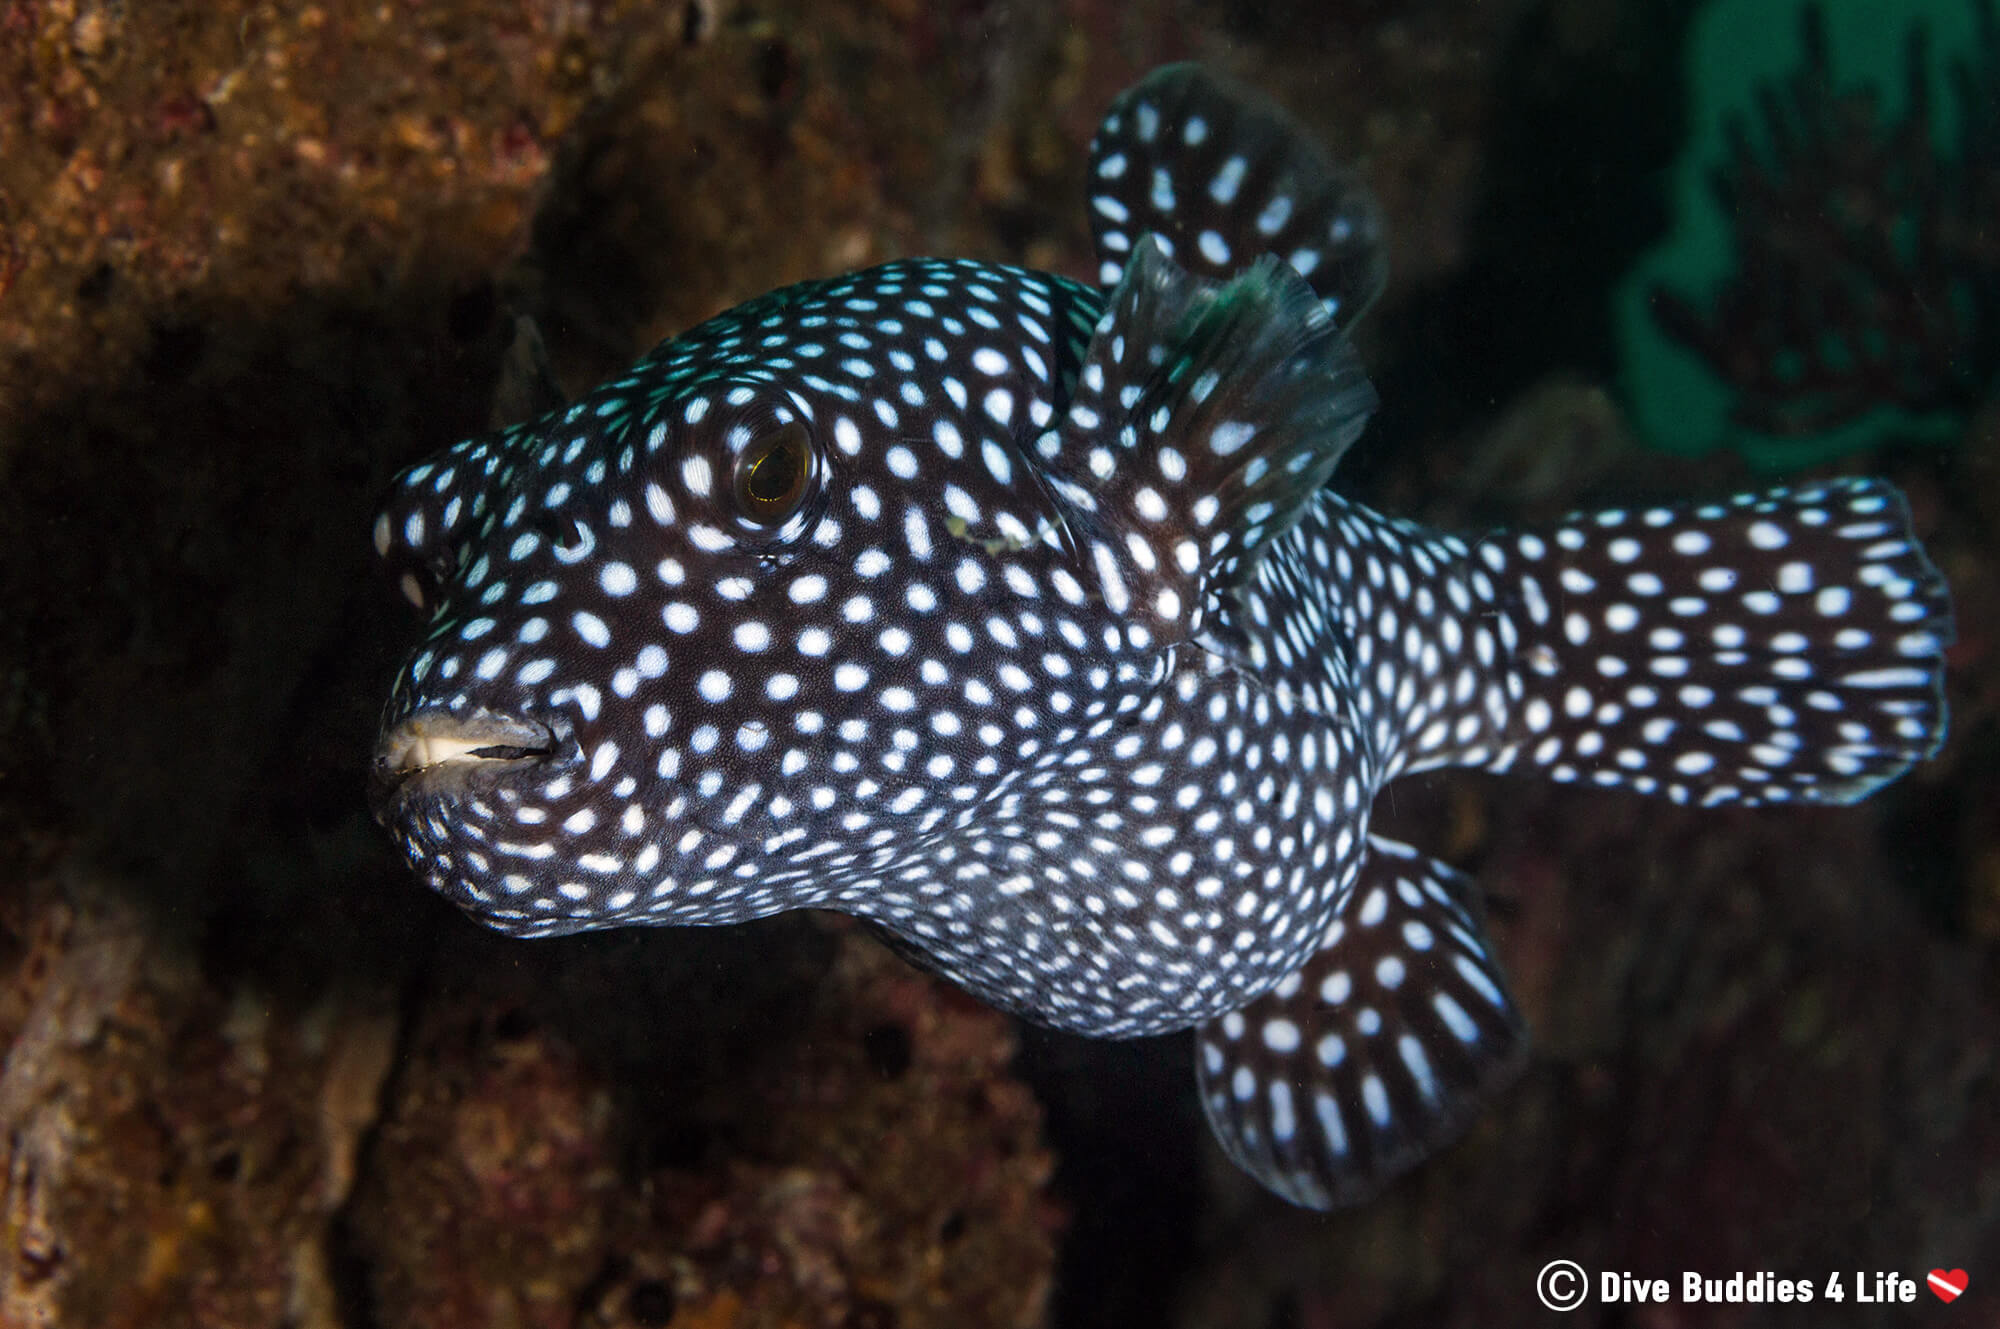 Guinea Fowl Puffer near some Rocks at the Bat Islands in Costa Rica